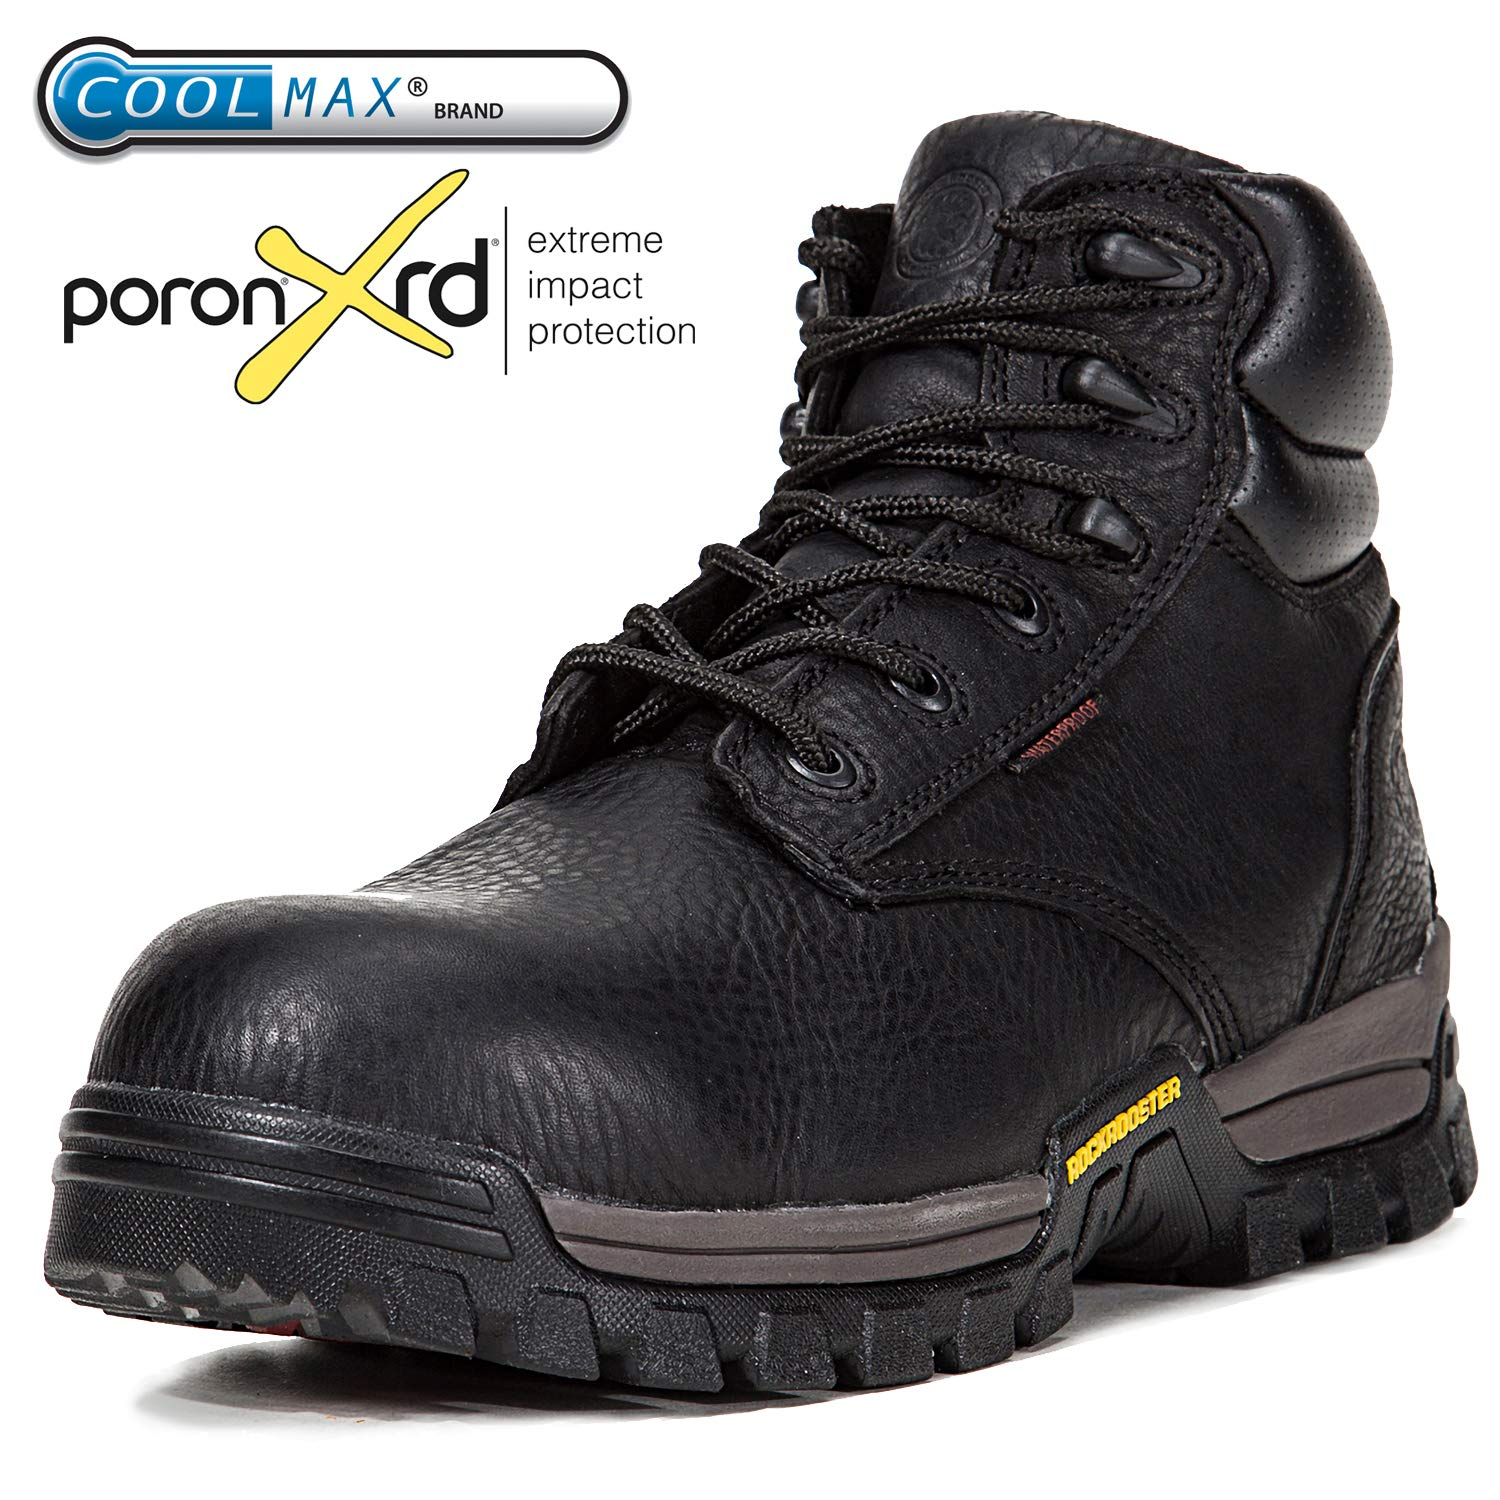 615418ea4fd ROCKROOSTER Men's Work Boots, Waterproof Hiking Boot, Safety Shoes  (AT697Pro, US 8, Black